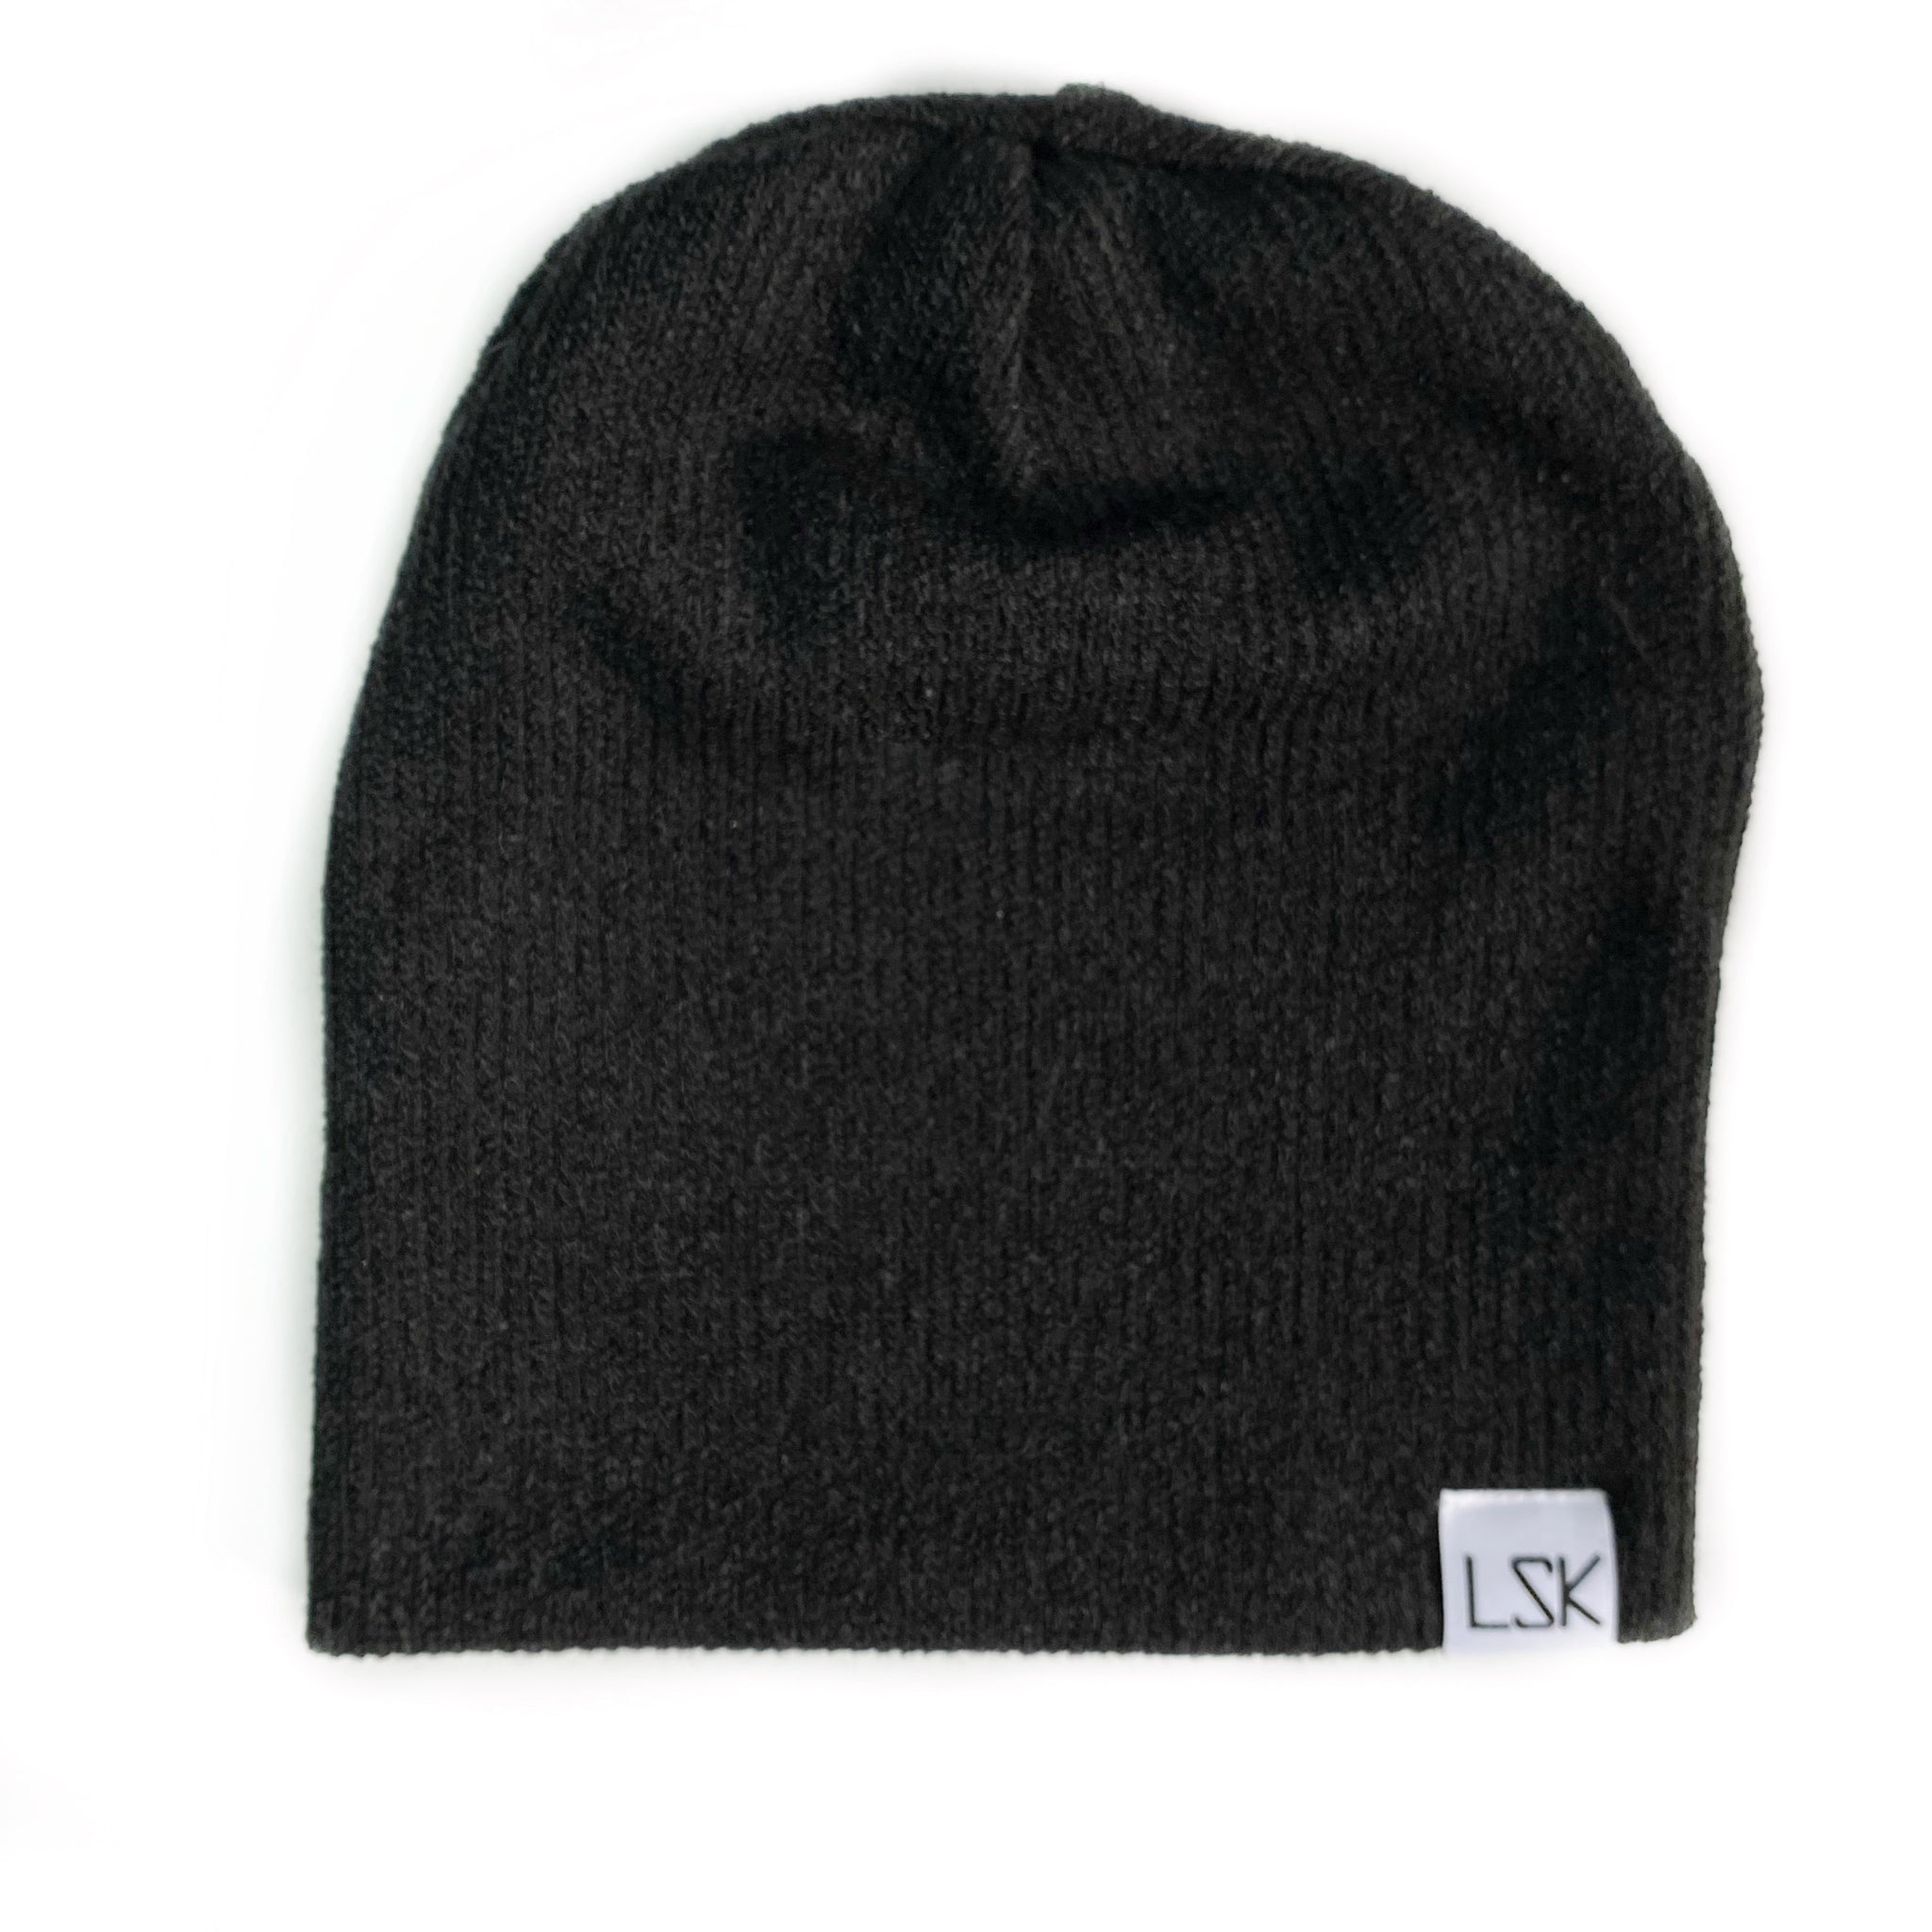 Black Ribbed Sweater Knit Slouchy Beanie